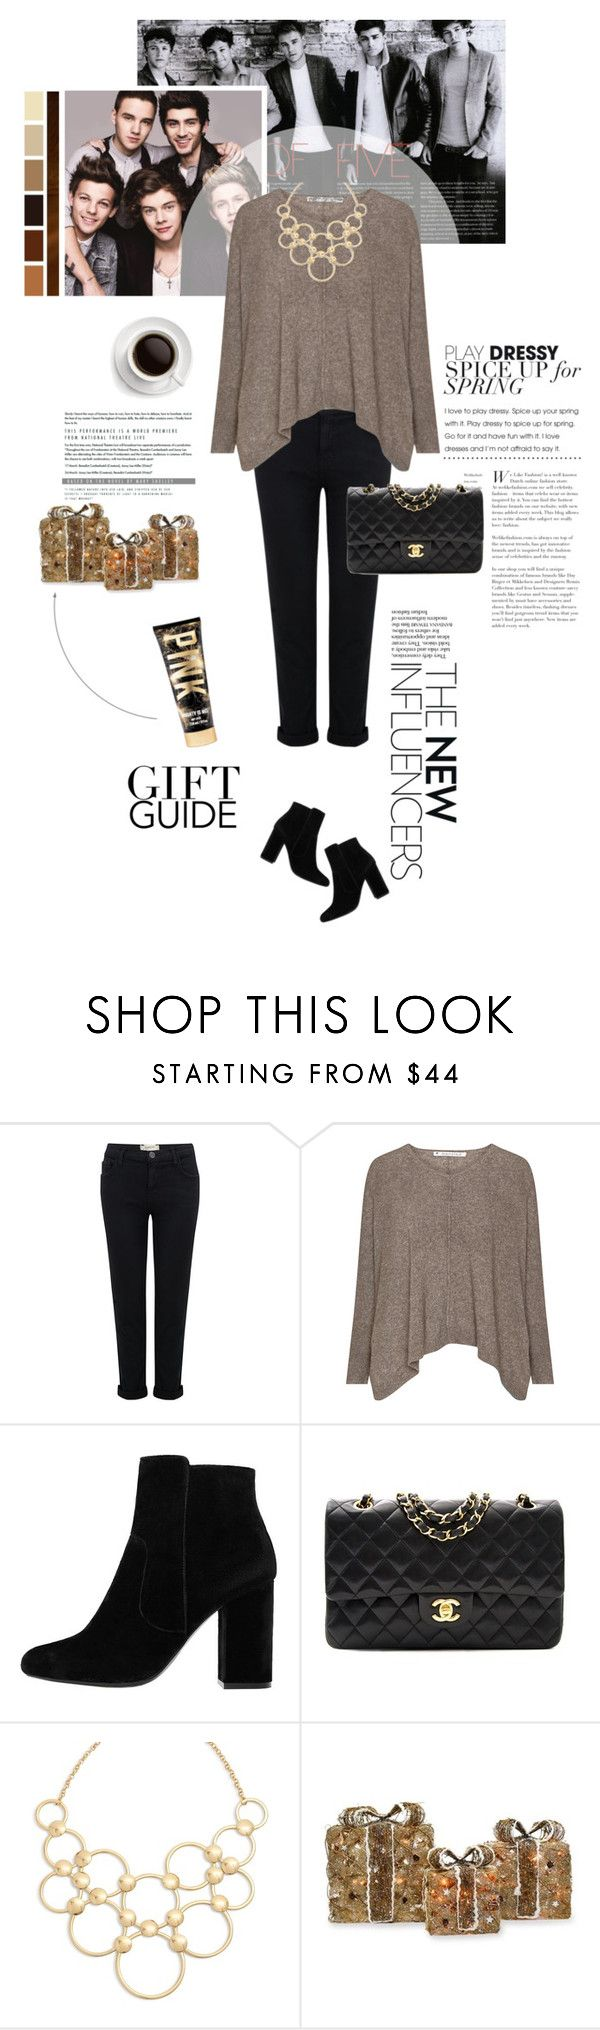 """Gift Guide"" by emaanathar ❤ liked on Polyvore featuring Current/Elliott, MANGO, Chanel, Vera Bradley, Seed Design, Shea's Wildflower Company, OneDirection, black, beige and powerlook"